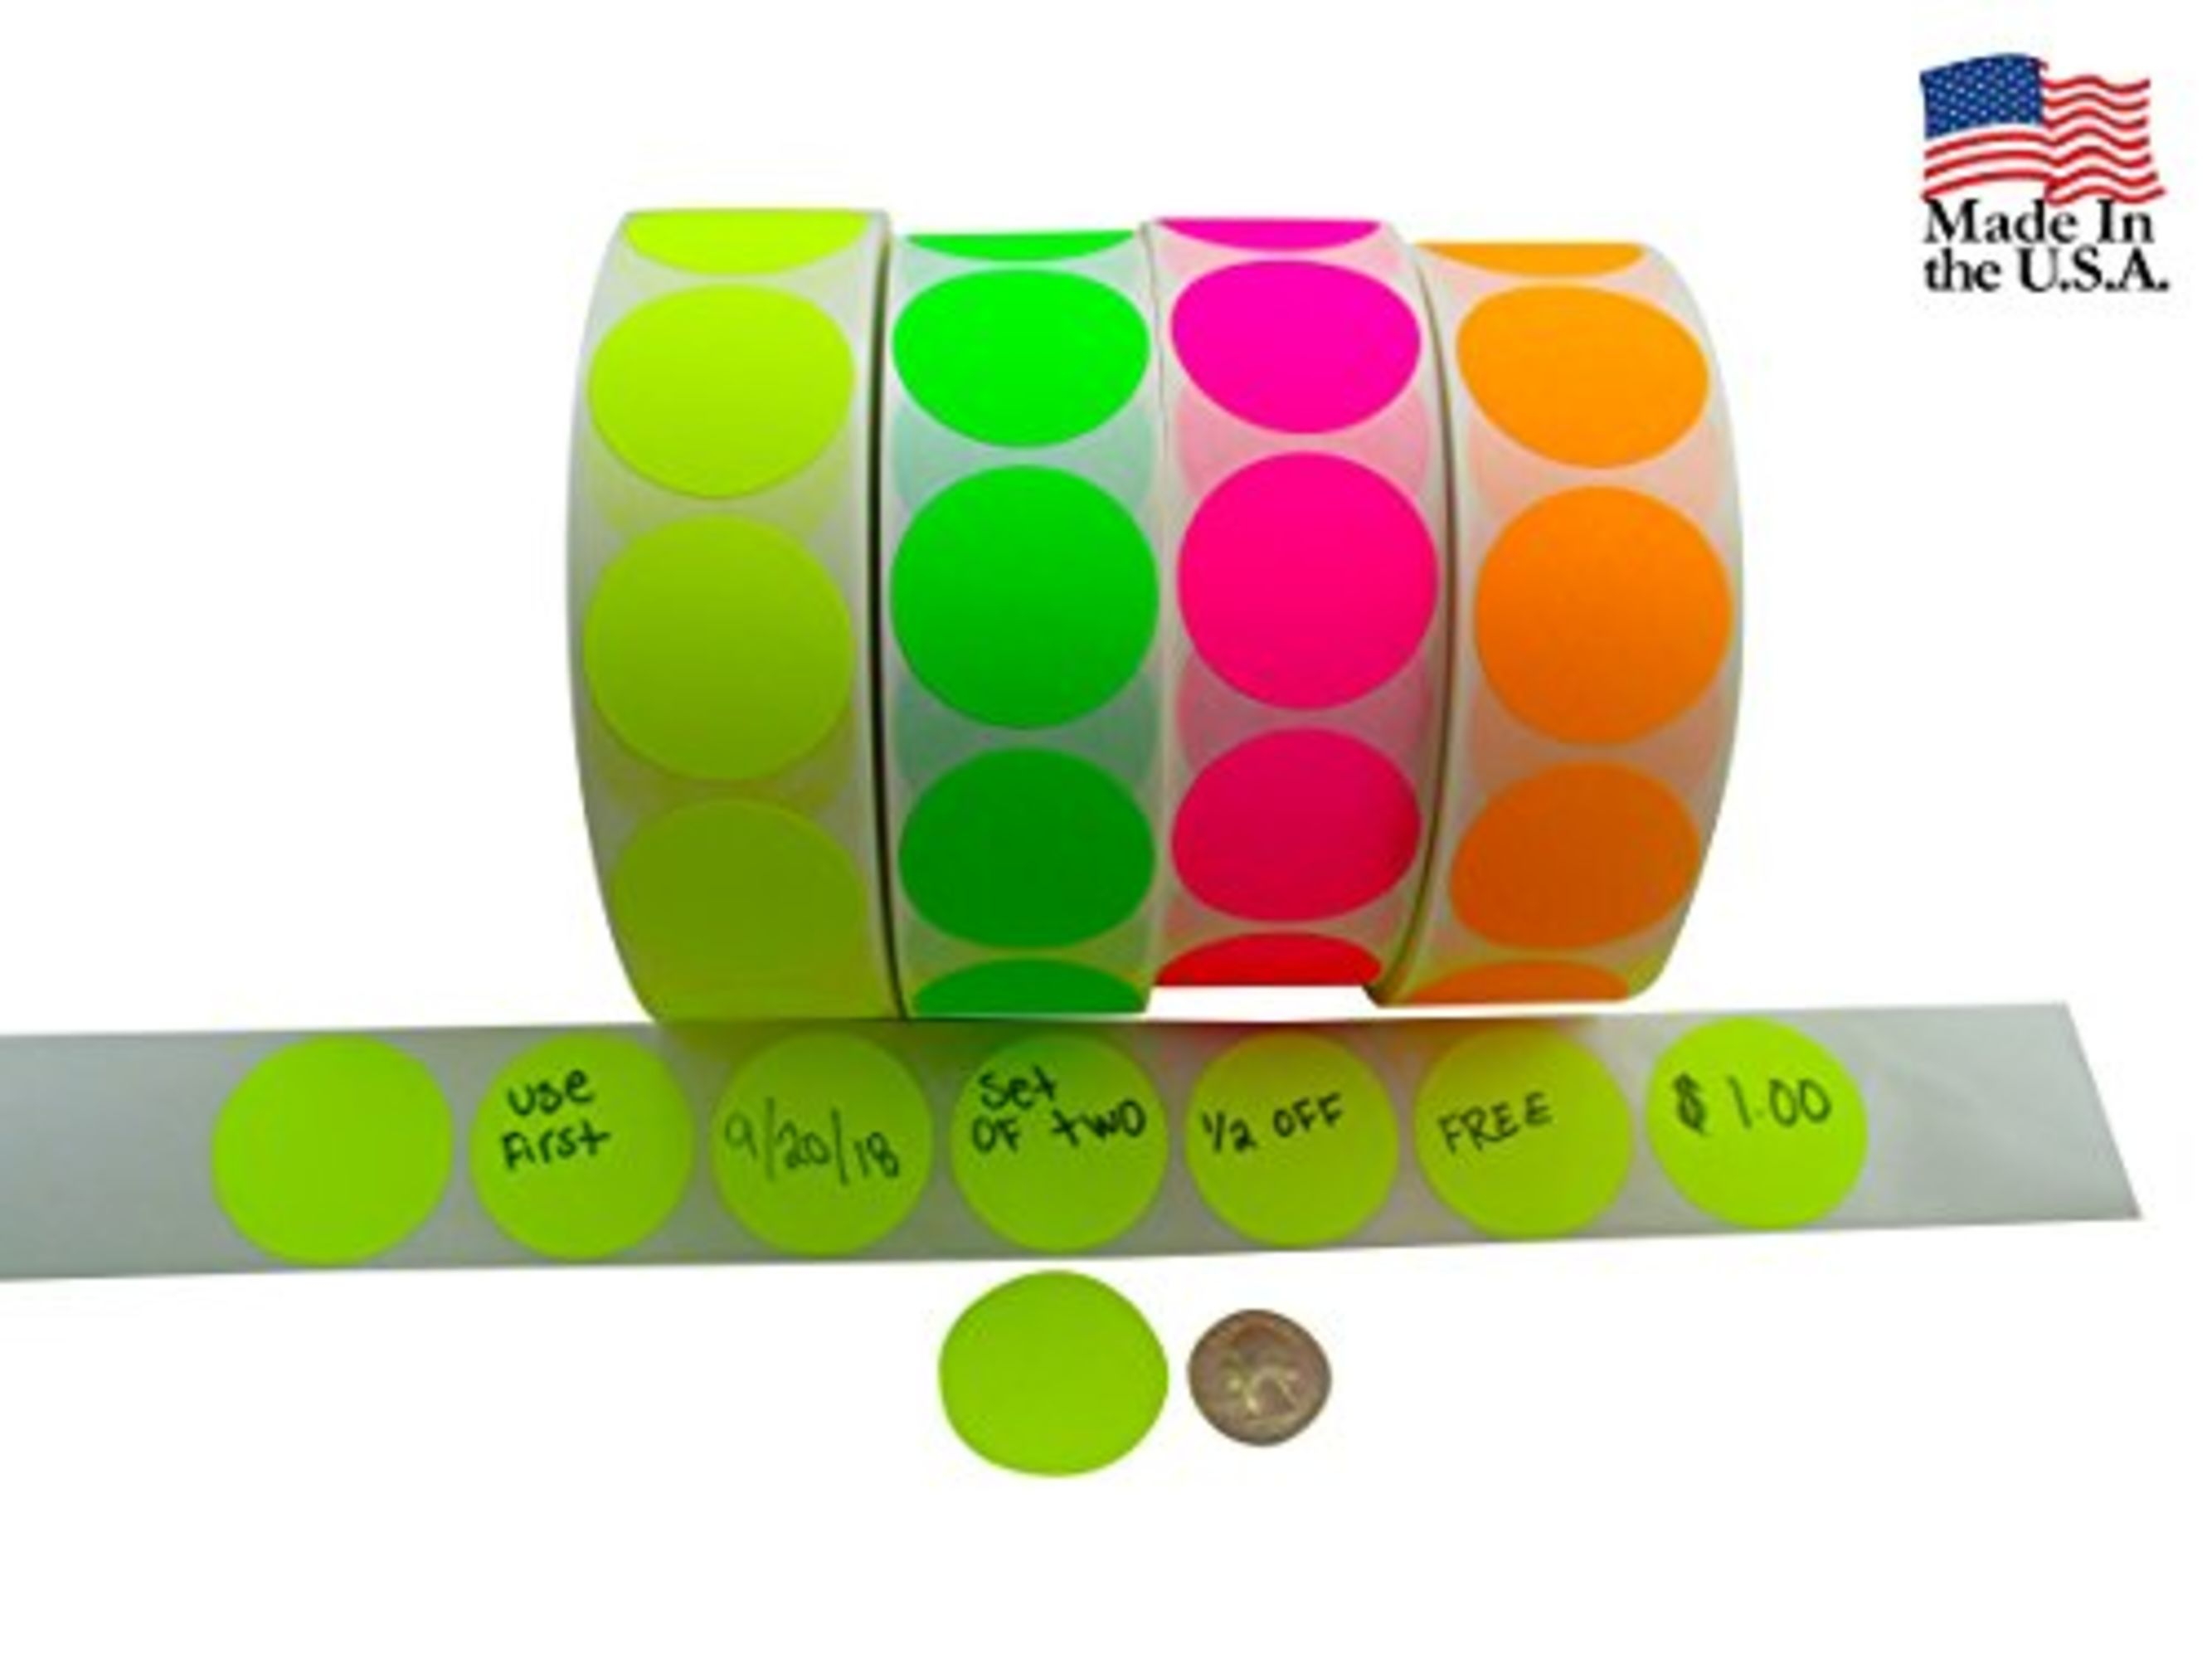 Circle stickers color coding labels super bright fluorescent neon yellow green orange and pink